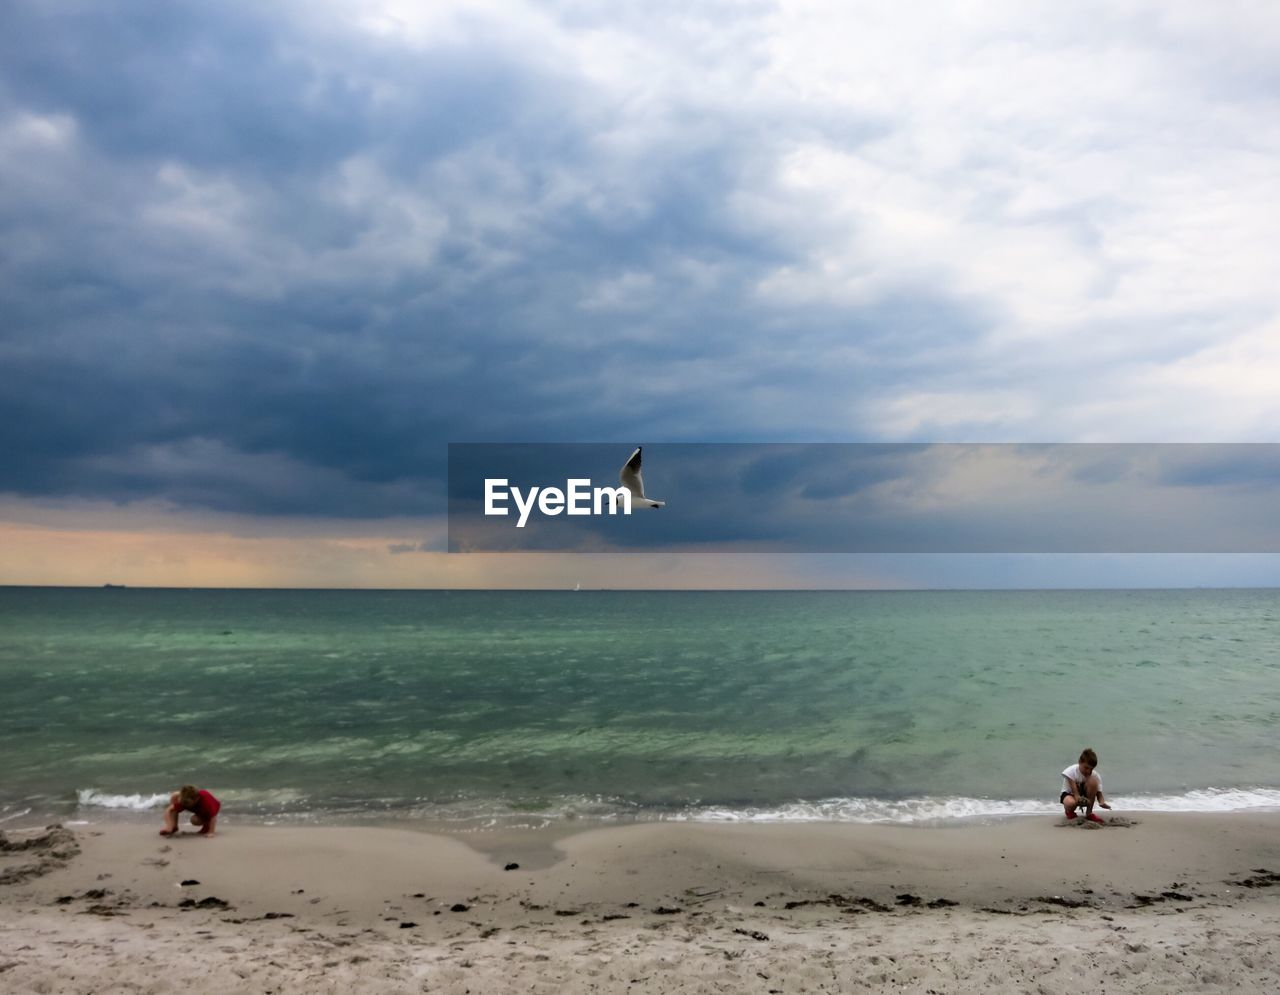 Black-headed seagull flying over kids playing on shore against cloudy sky